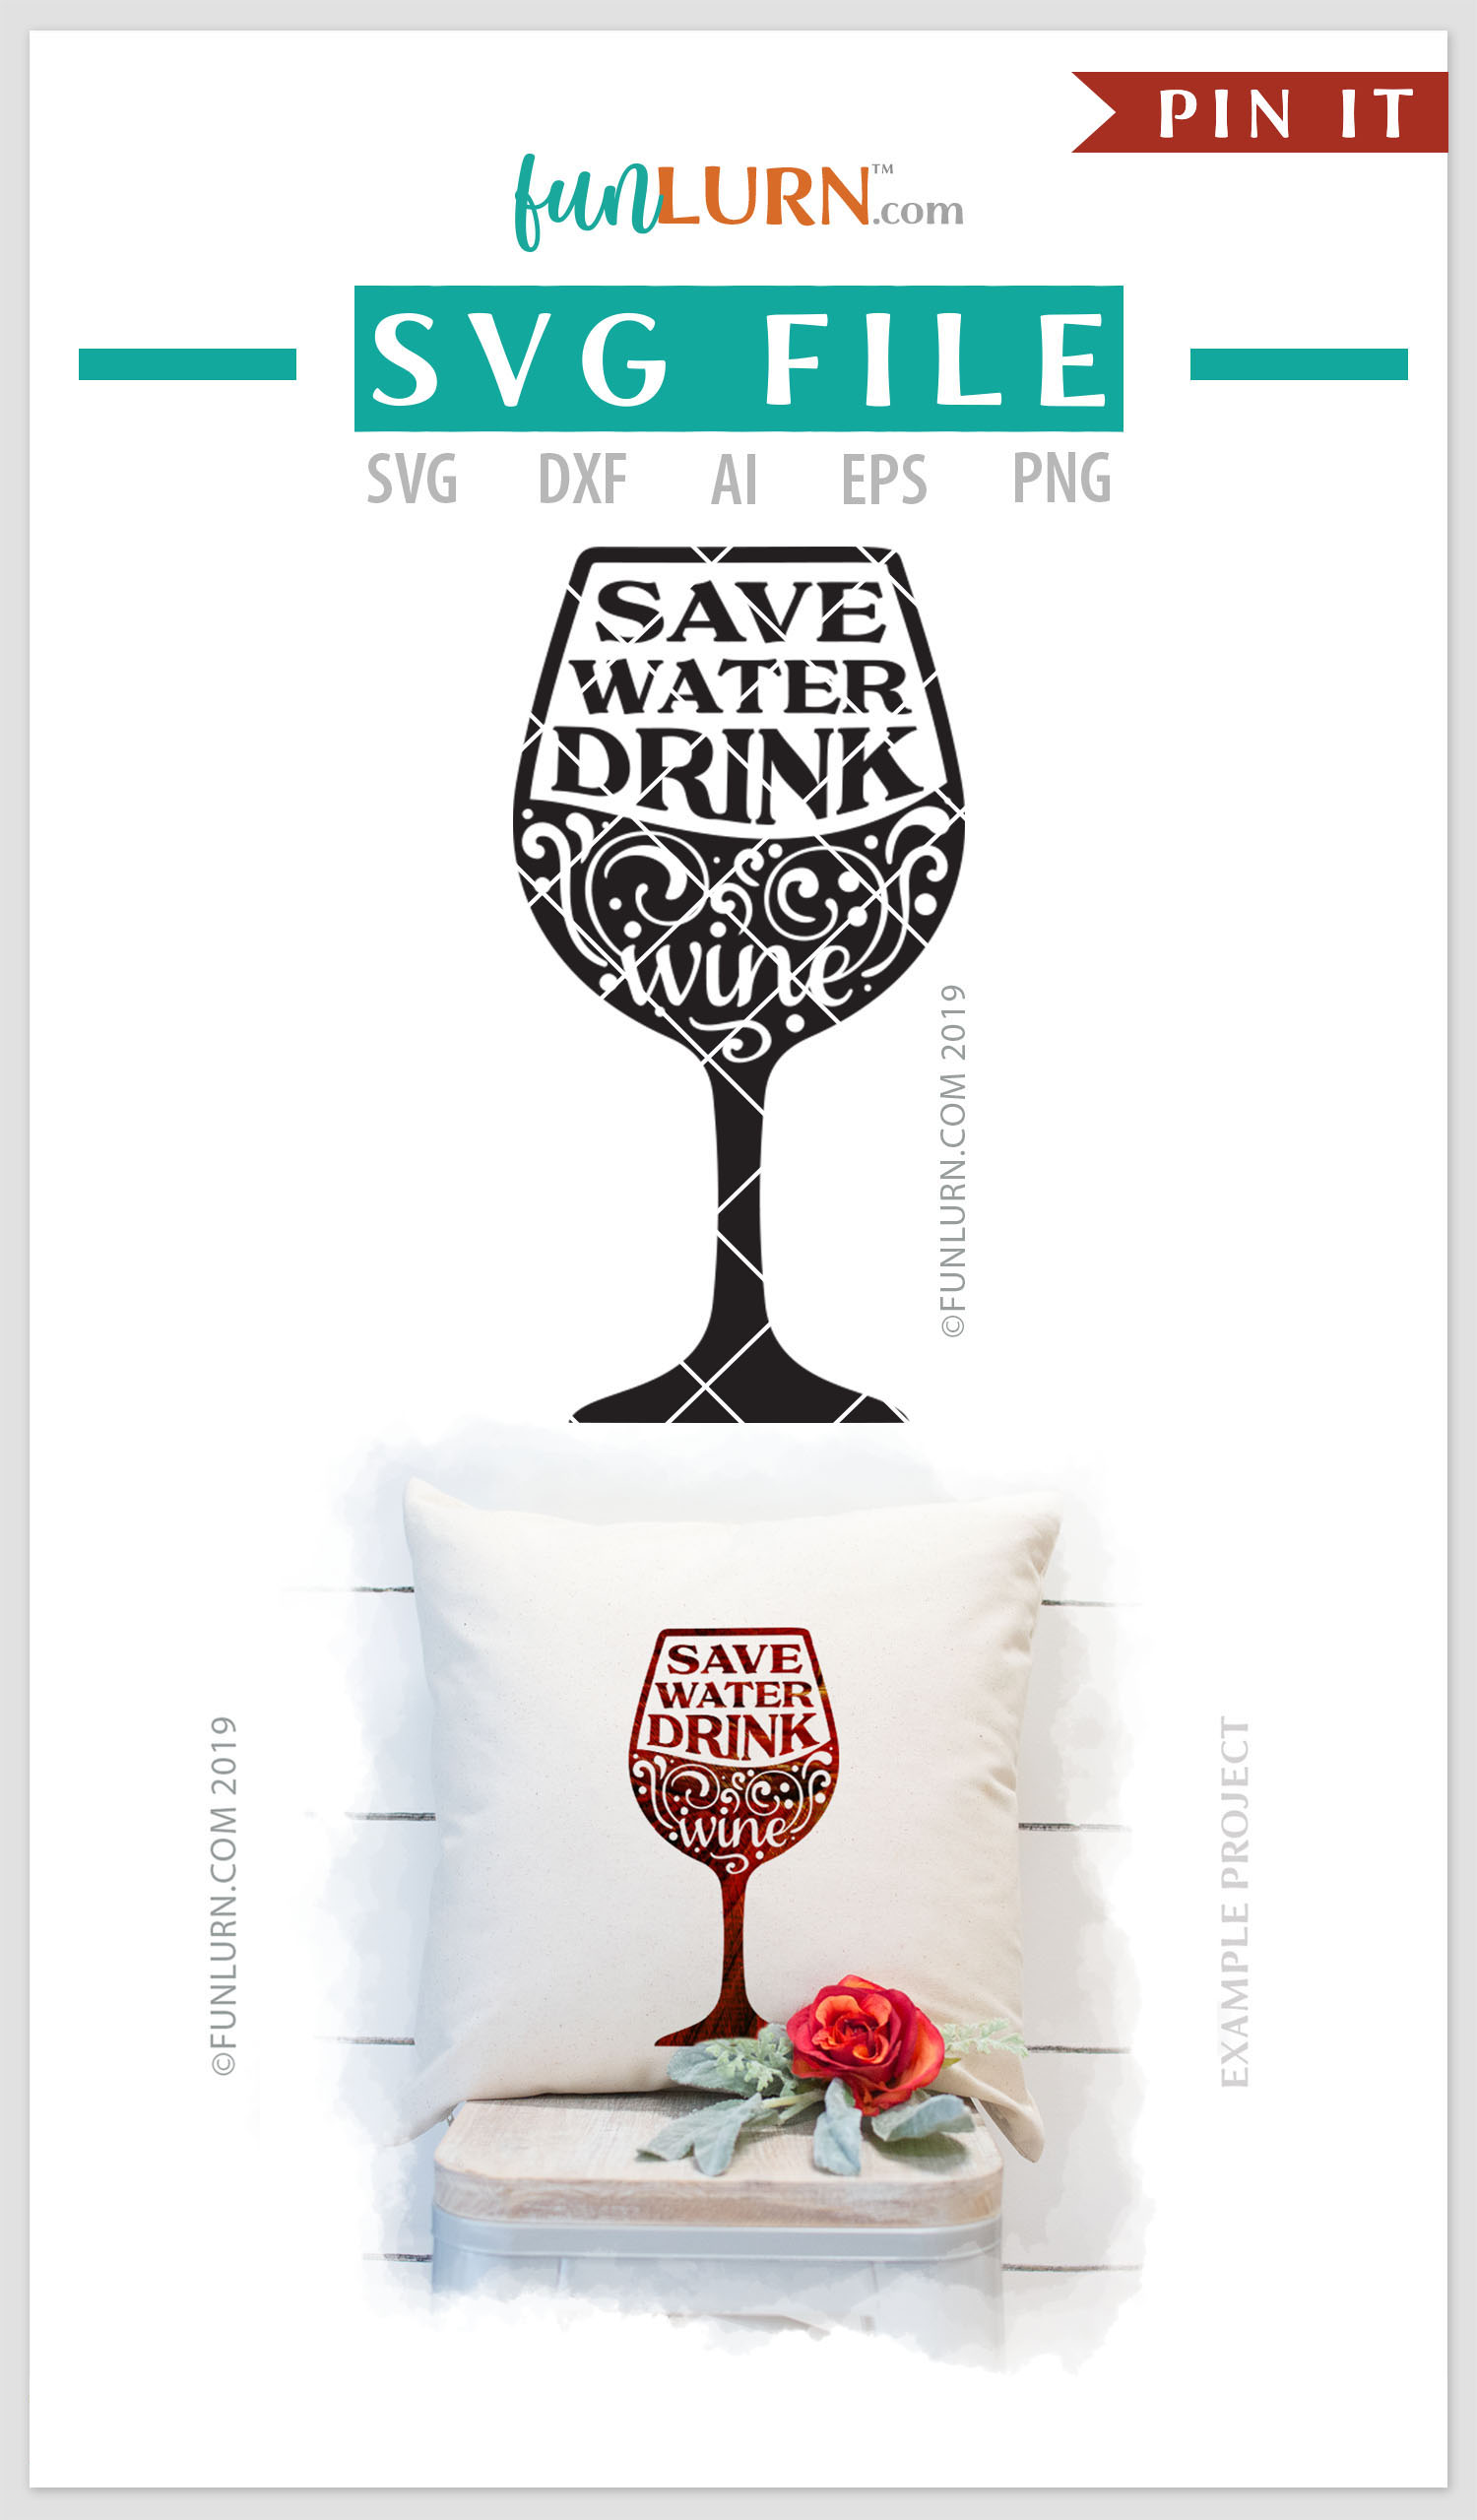 Save Water Drink Wine SVG Cut File example image 4